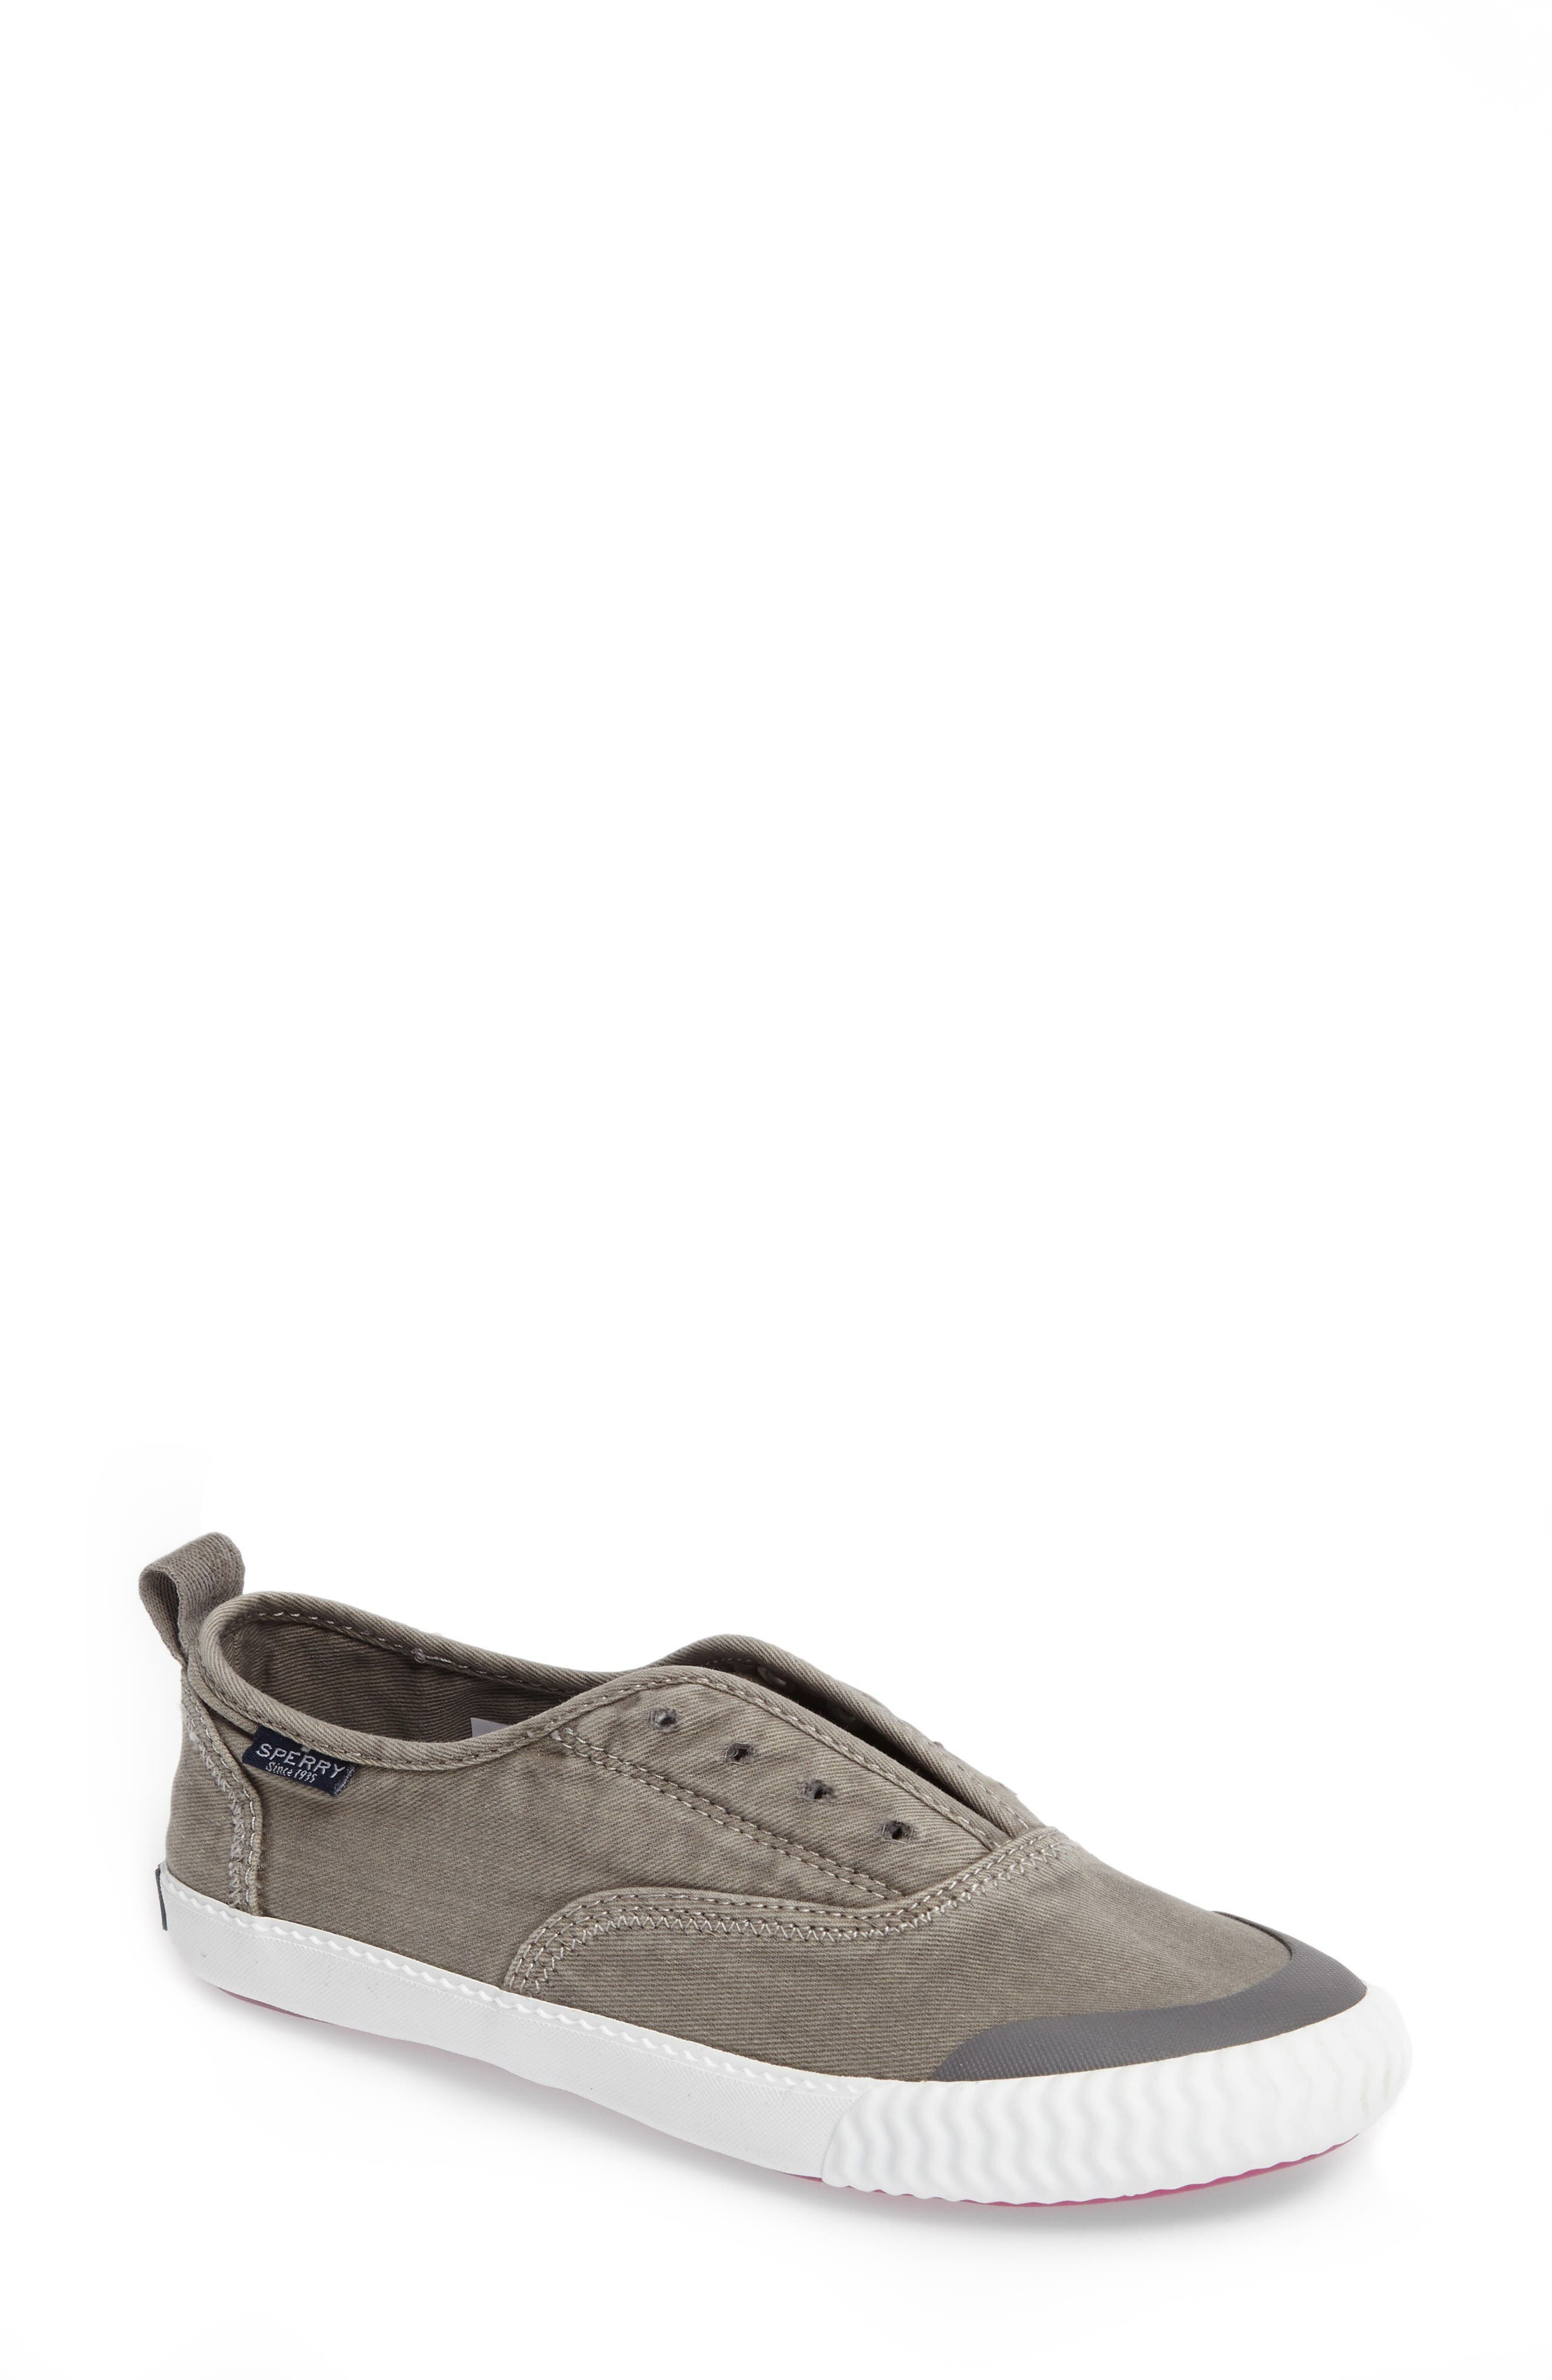 Sperry Sayel Slip-On Sneaker (Women)